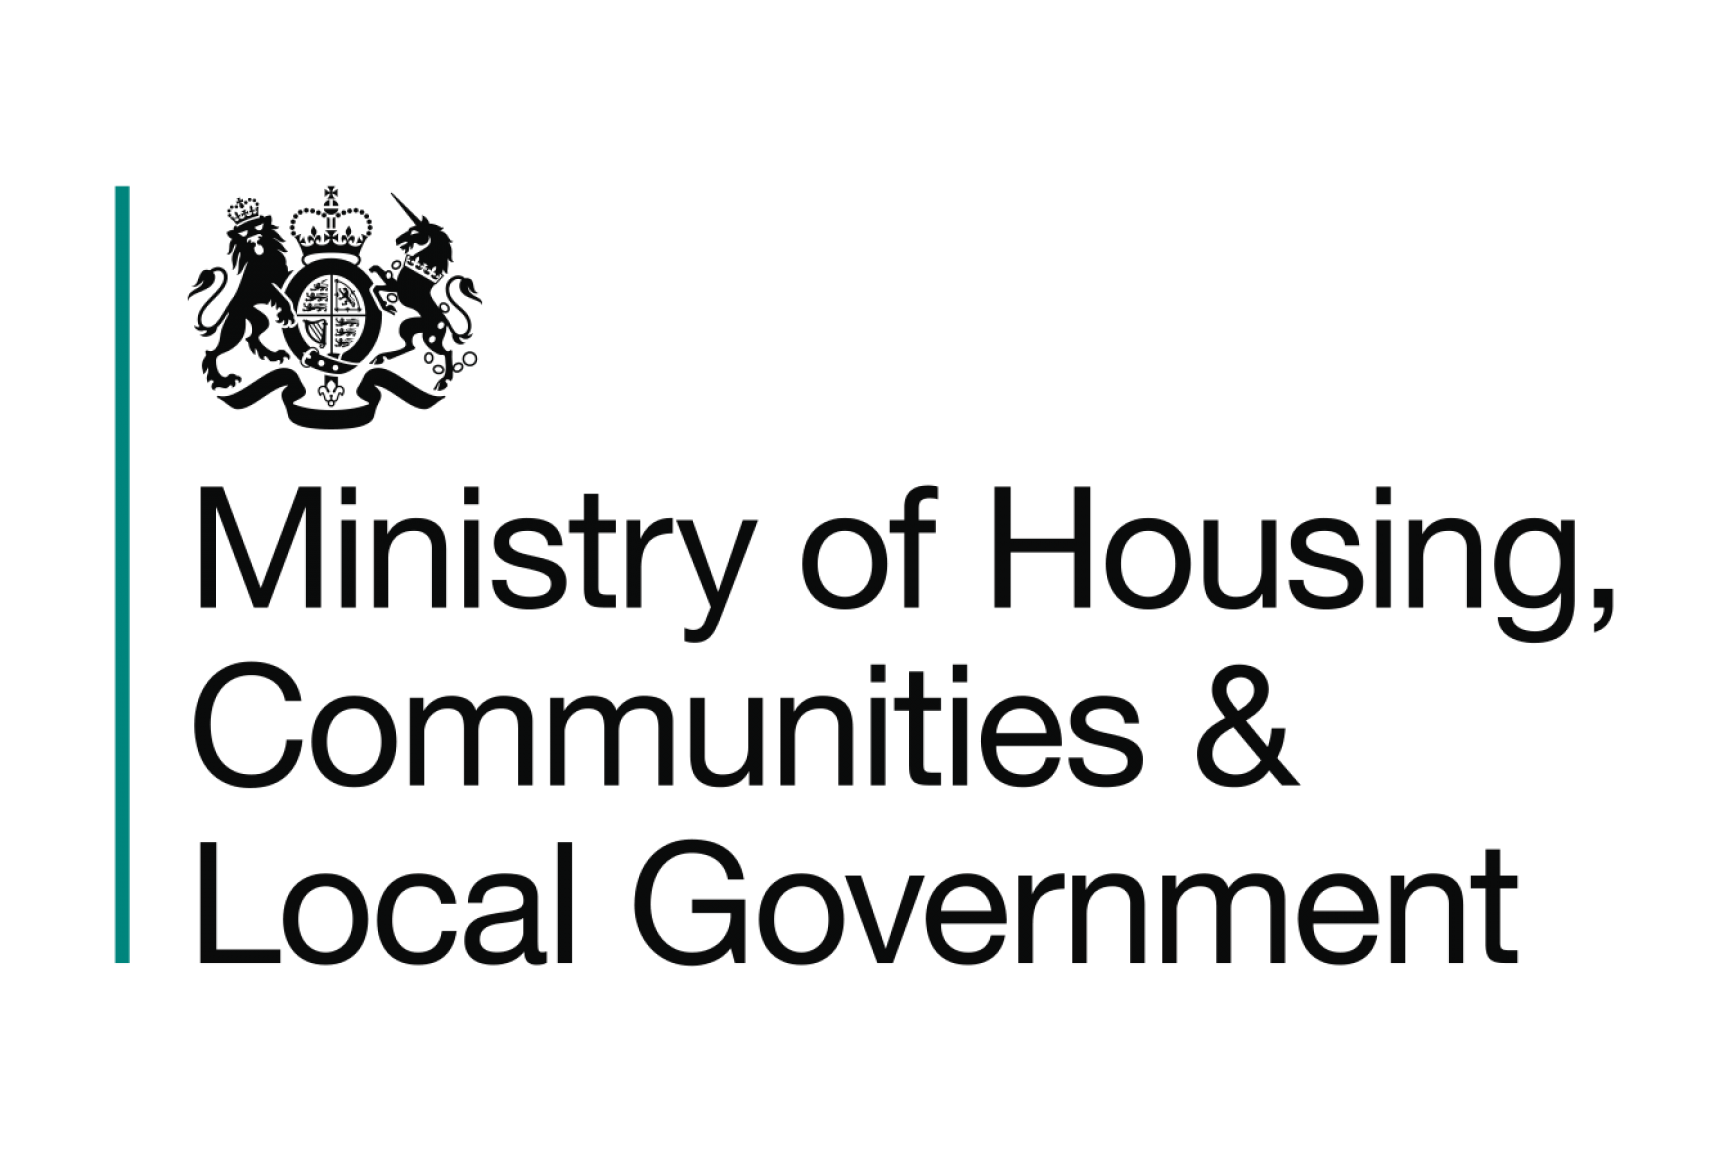 Ministry of Housing, Communities & Local Government (MHCLG)